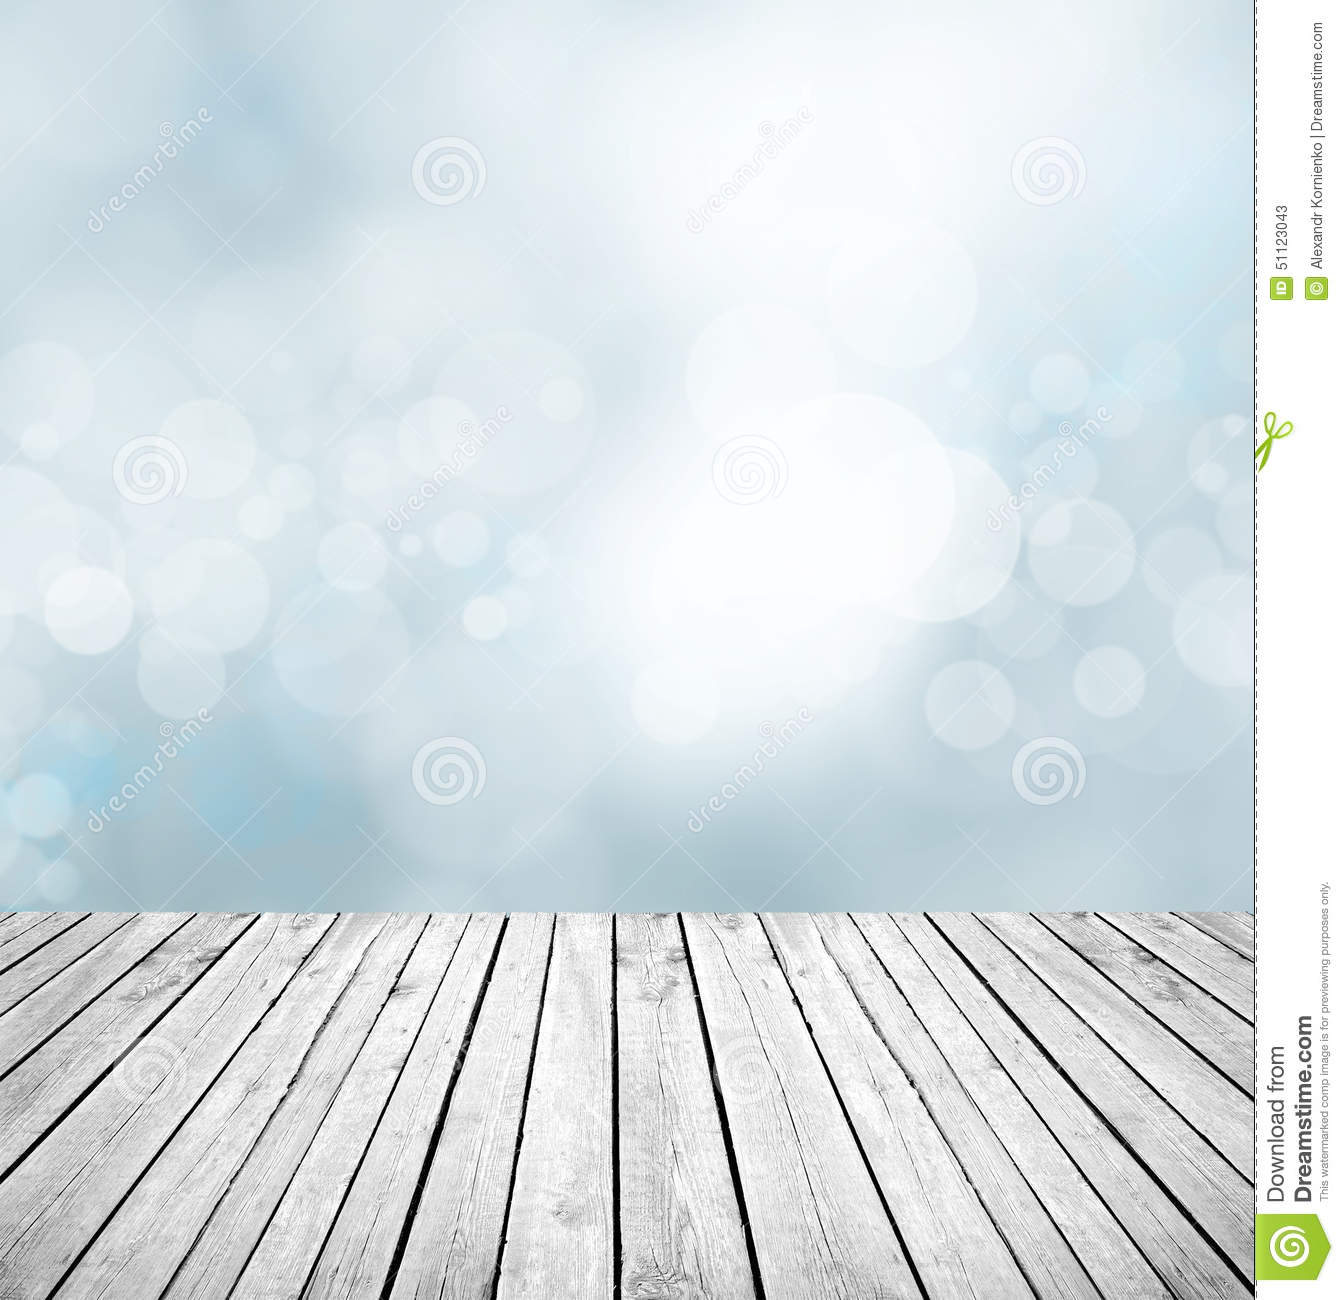 Empty Wooden Counter Background Stock Photo Image 51123043